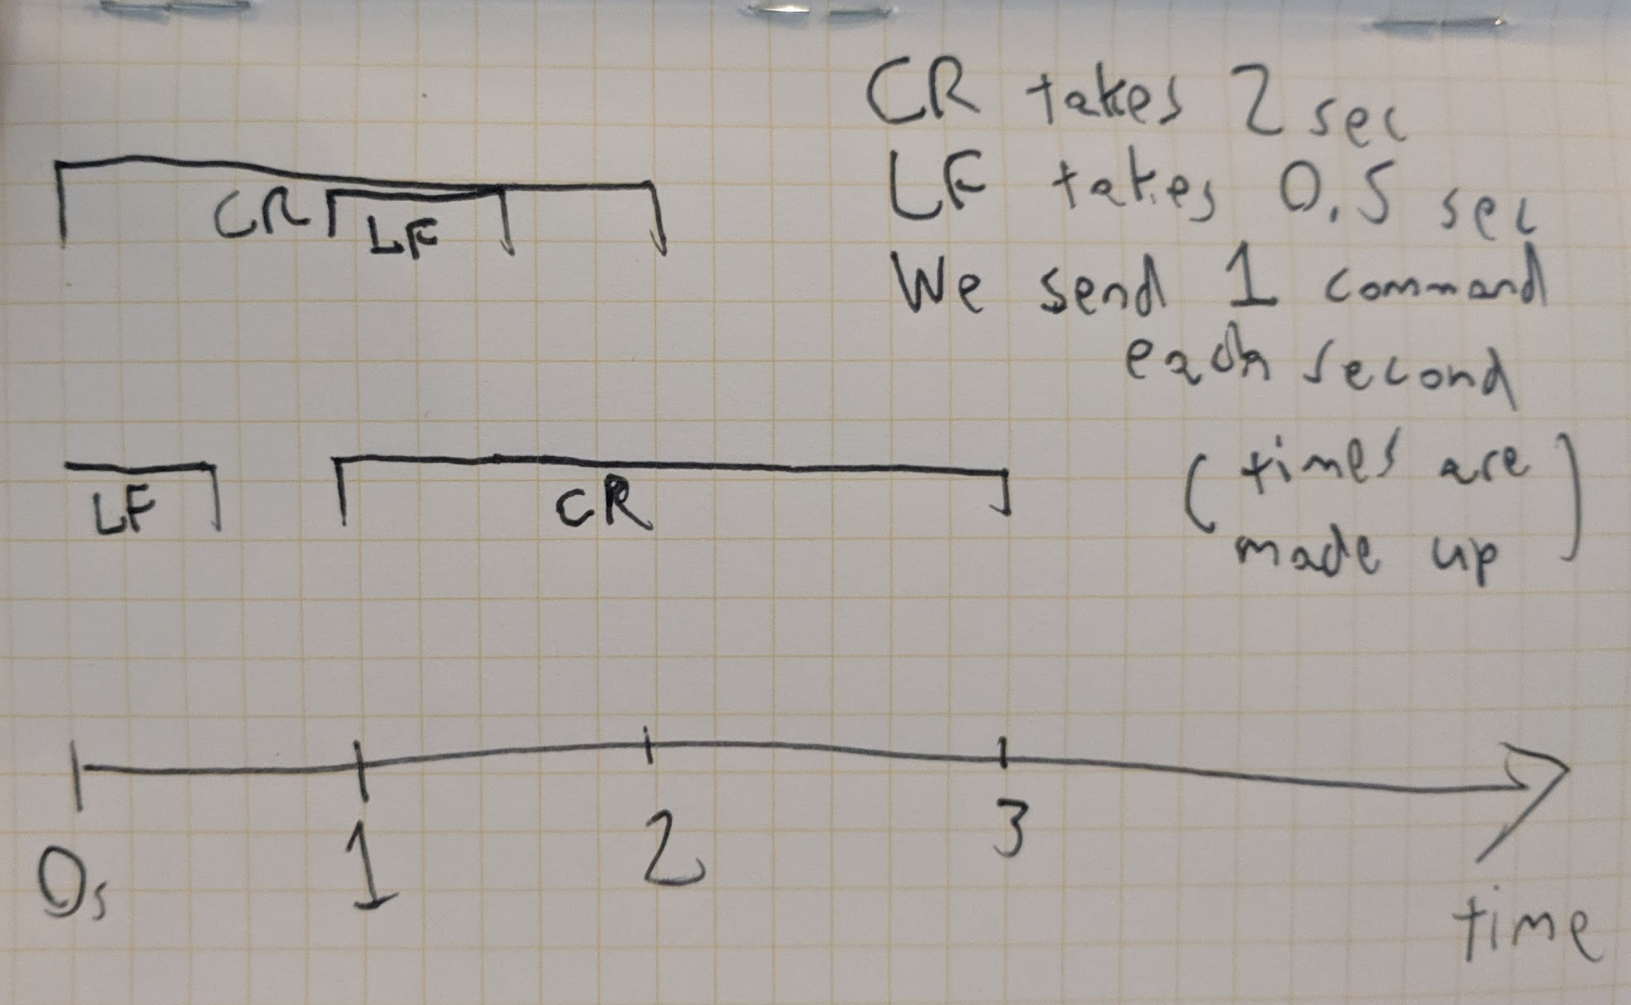 A timing diagram that shows an LF command occurring during the entirety of a CR command, assuming some kind of clock latching the inputs.